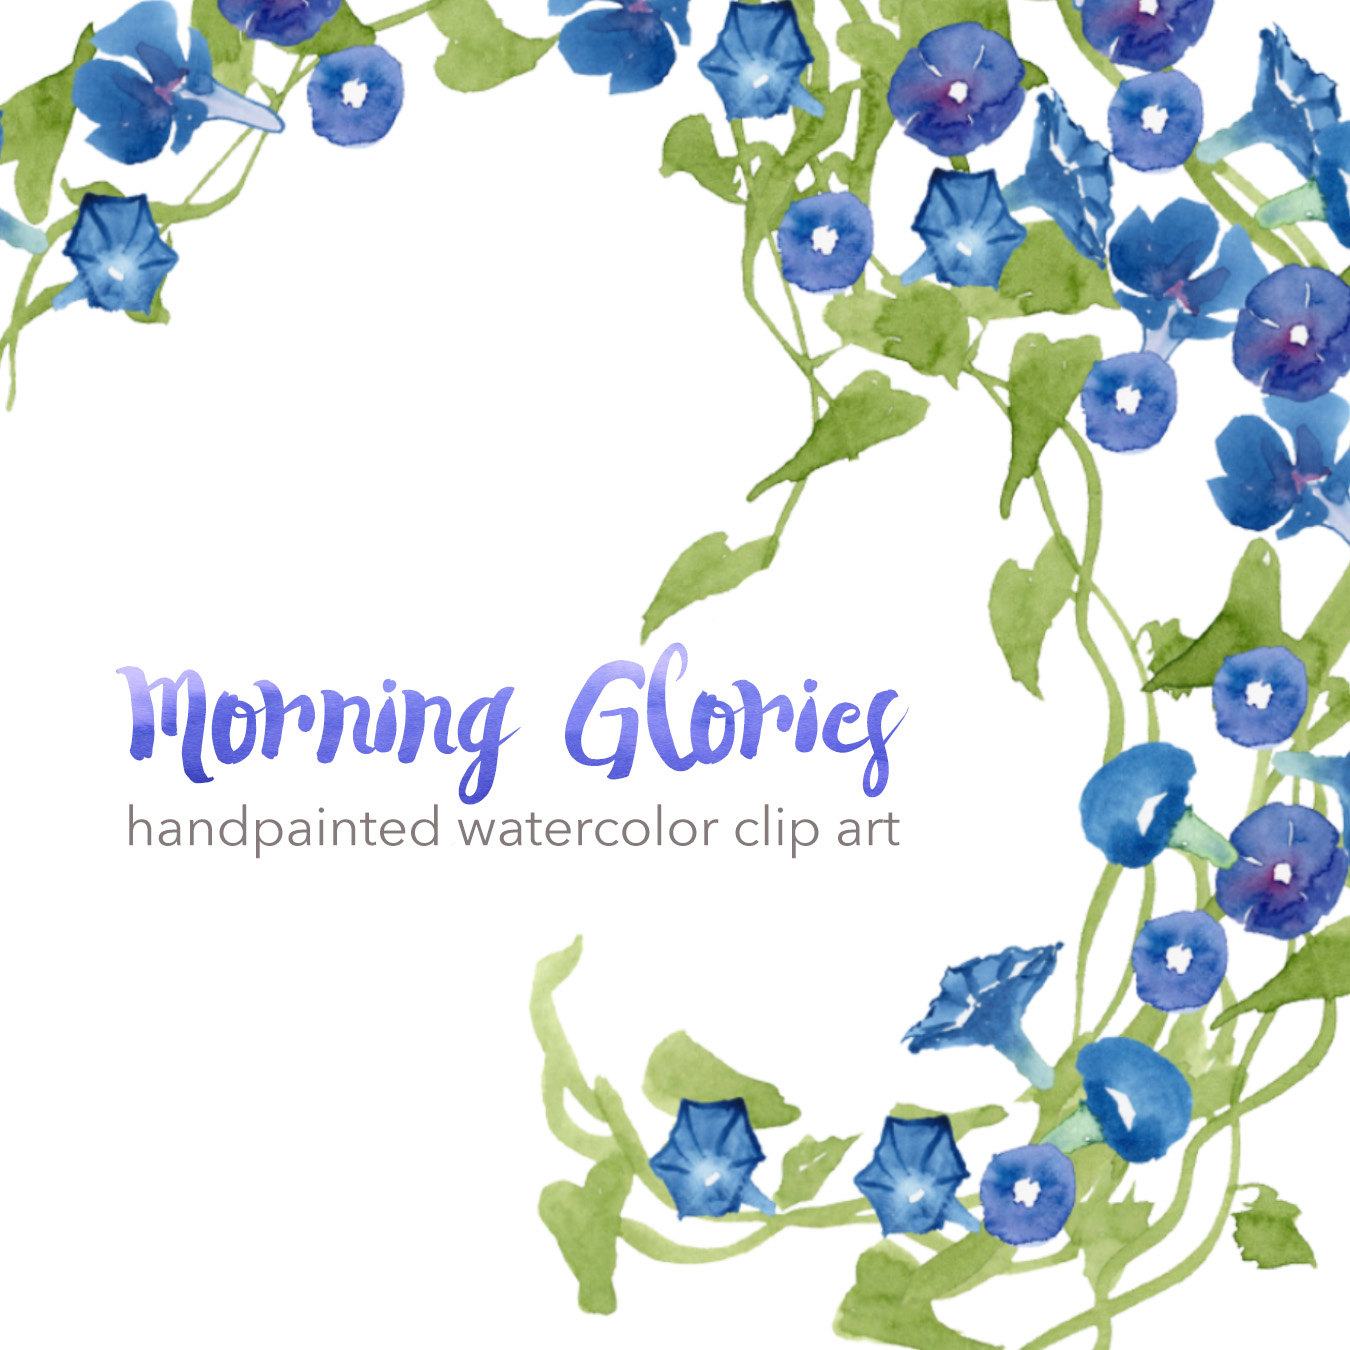 Morning Glory clipart watercolor #7